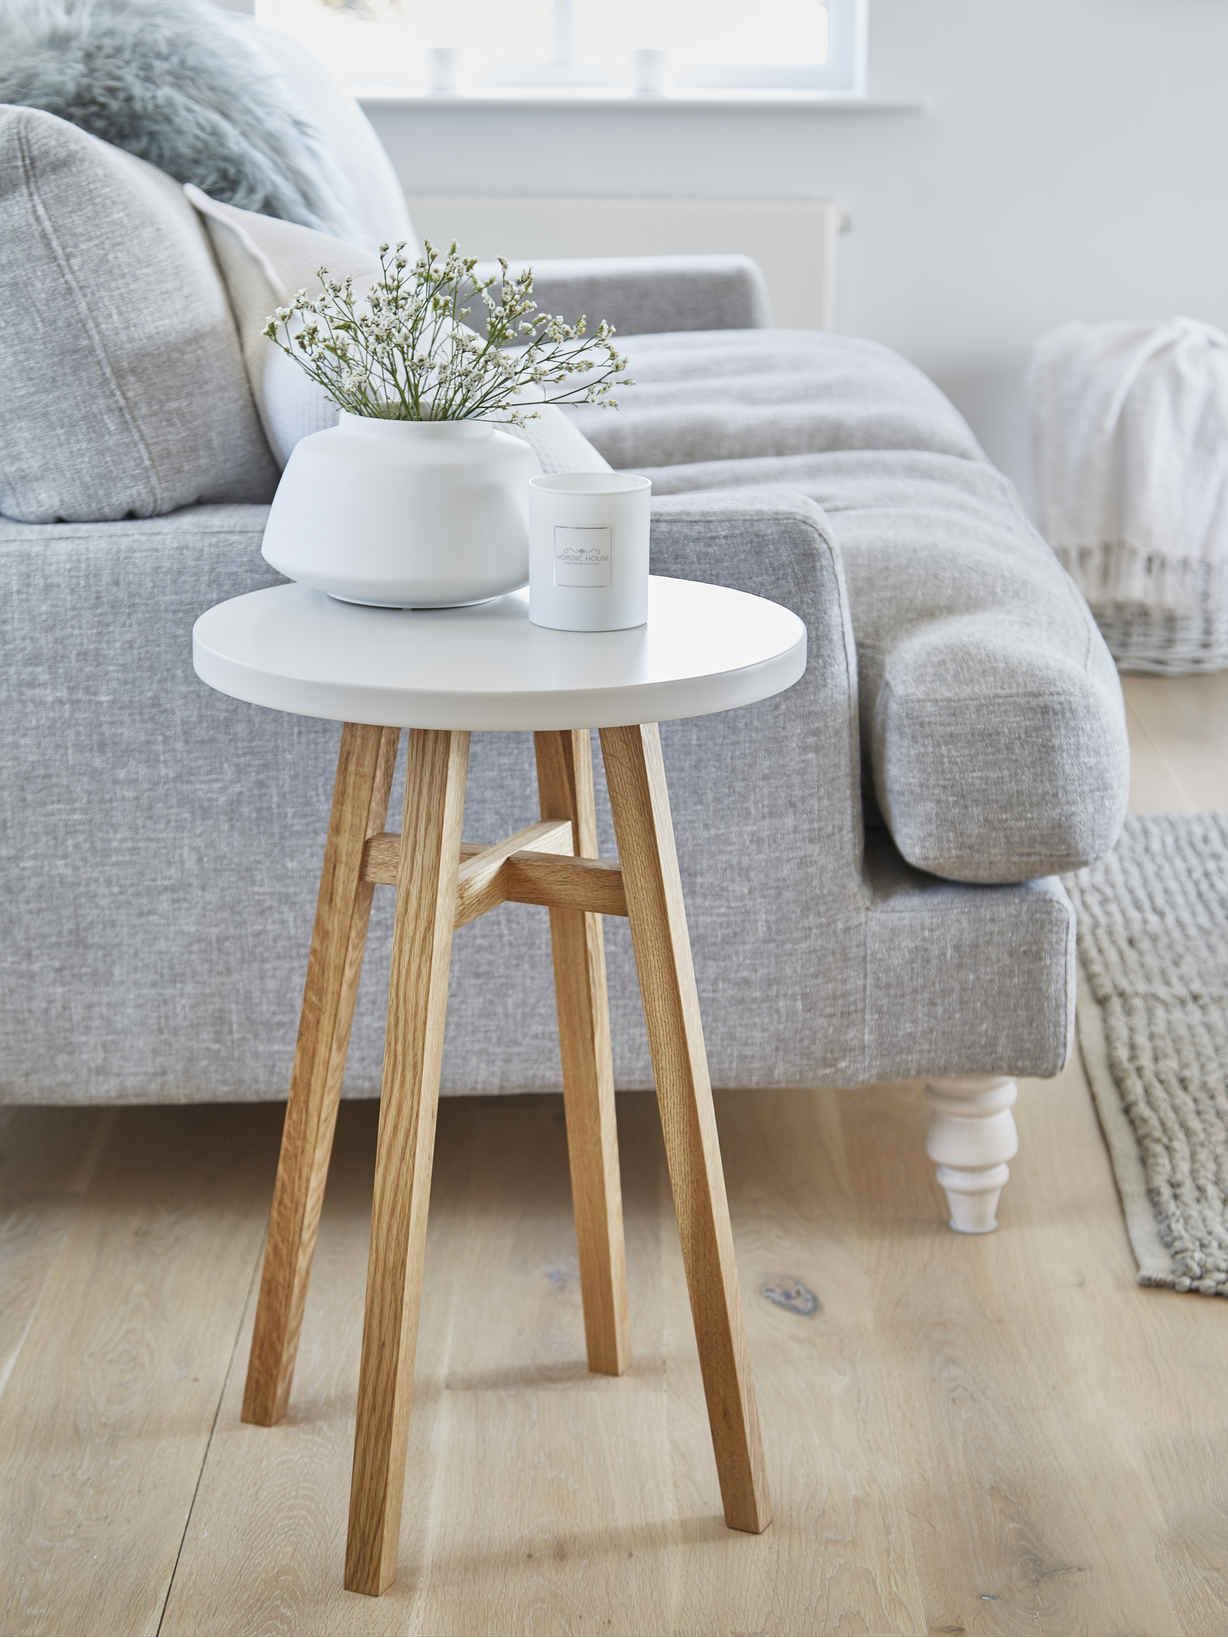 svea side table chalk white in 2020 scandi living room on exclusive modern nesting end tables design ideas very functional furnishings id=75310